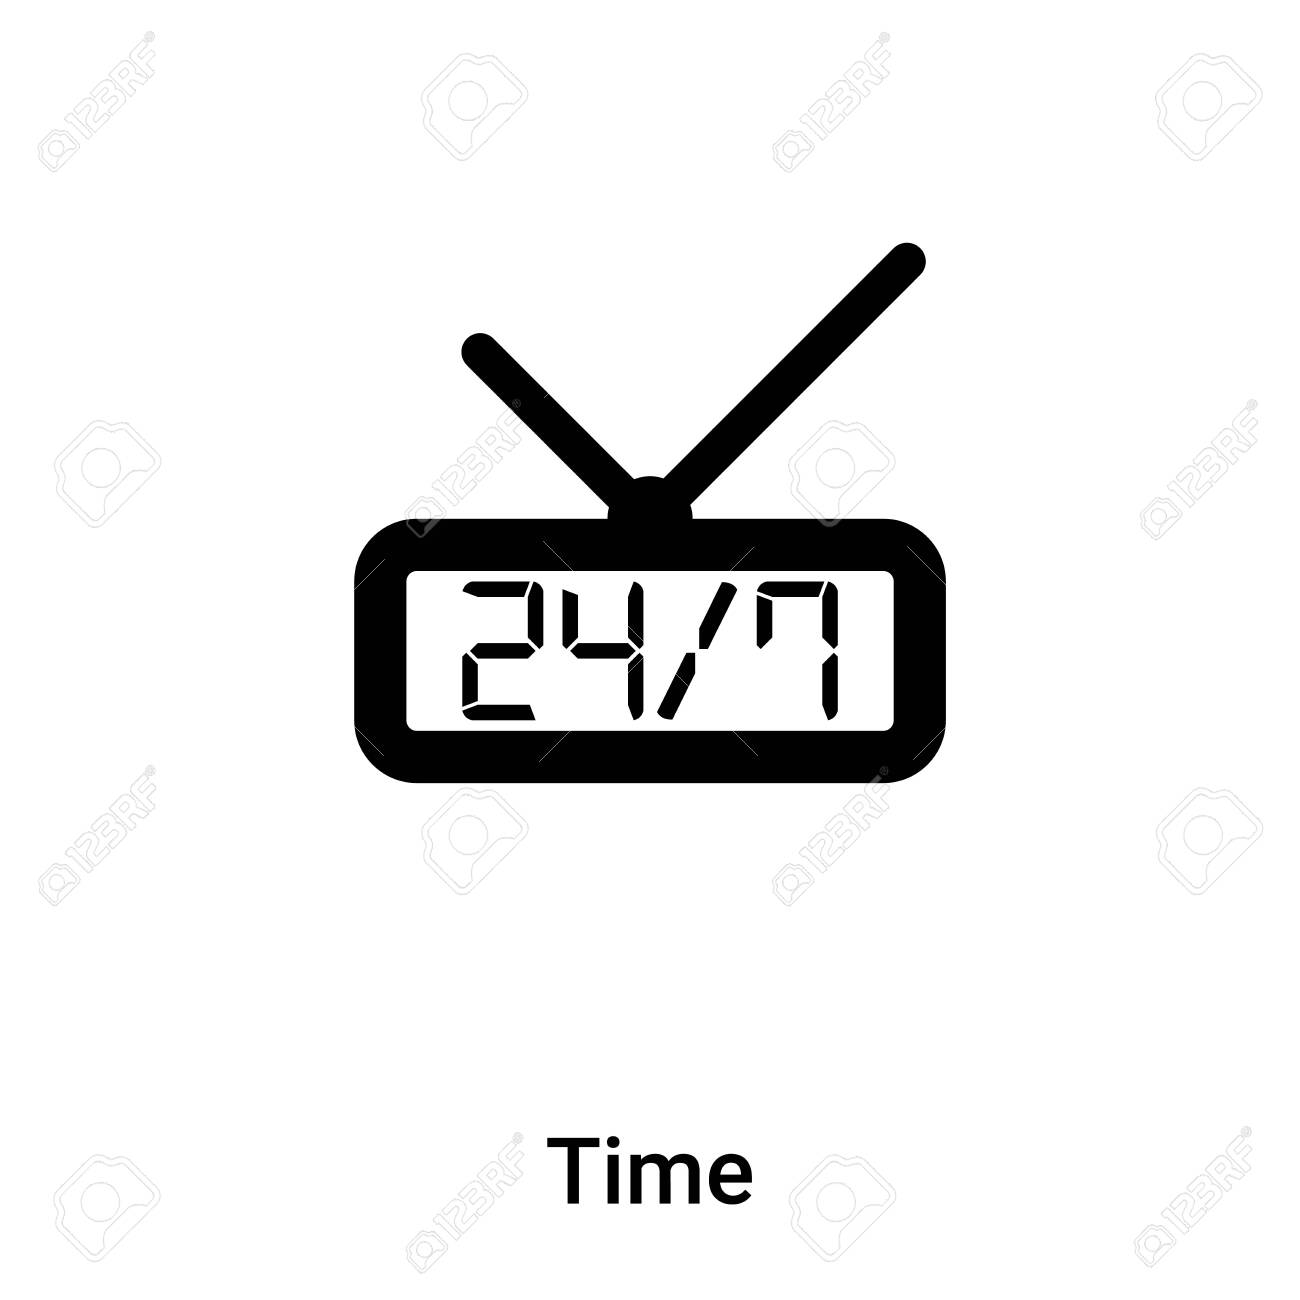 Time icon vector isolated on white background, concept of Time sign on transparent background, filled black symbol - 121530599